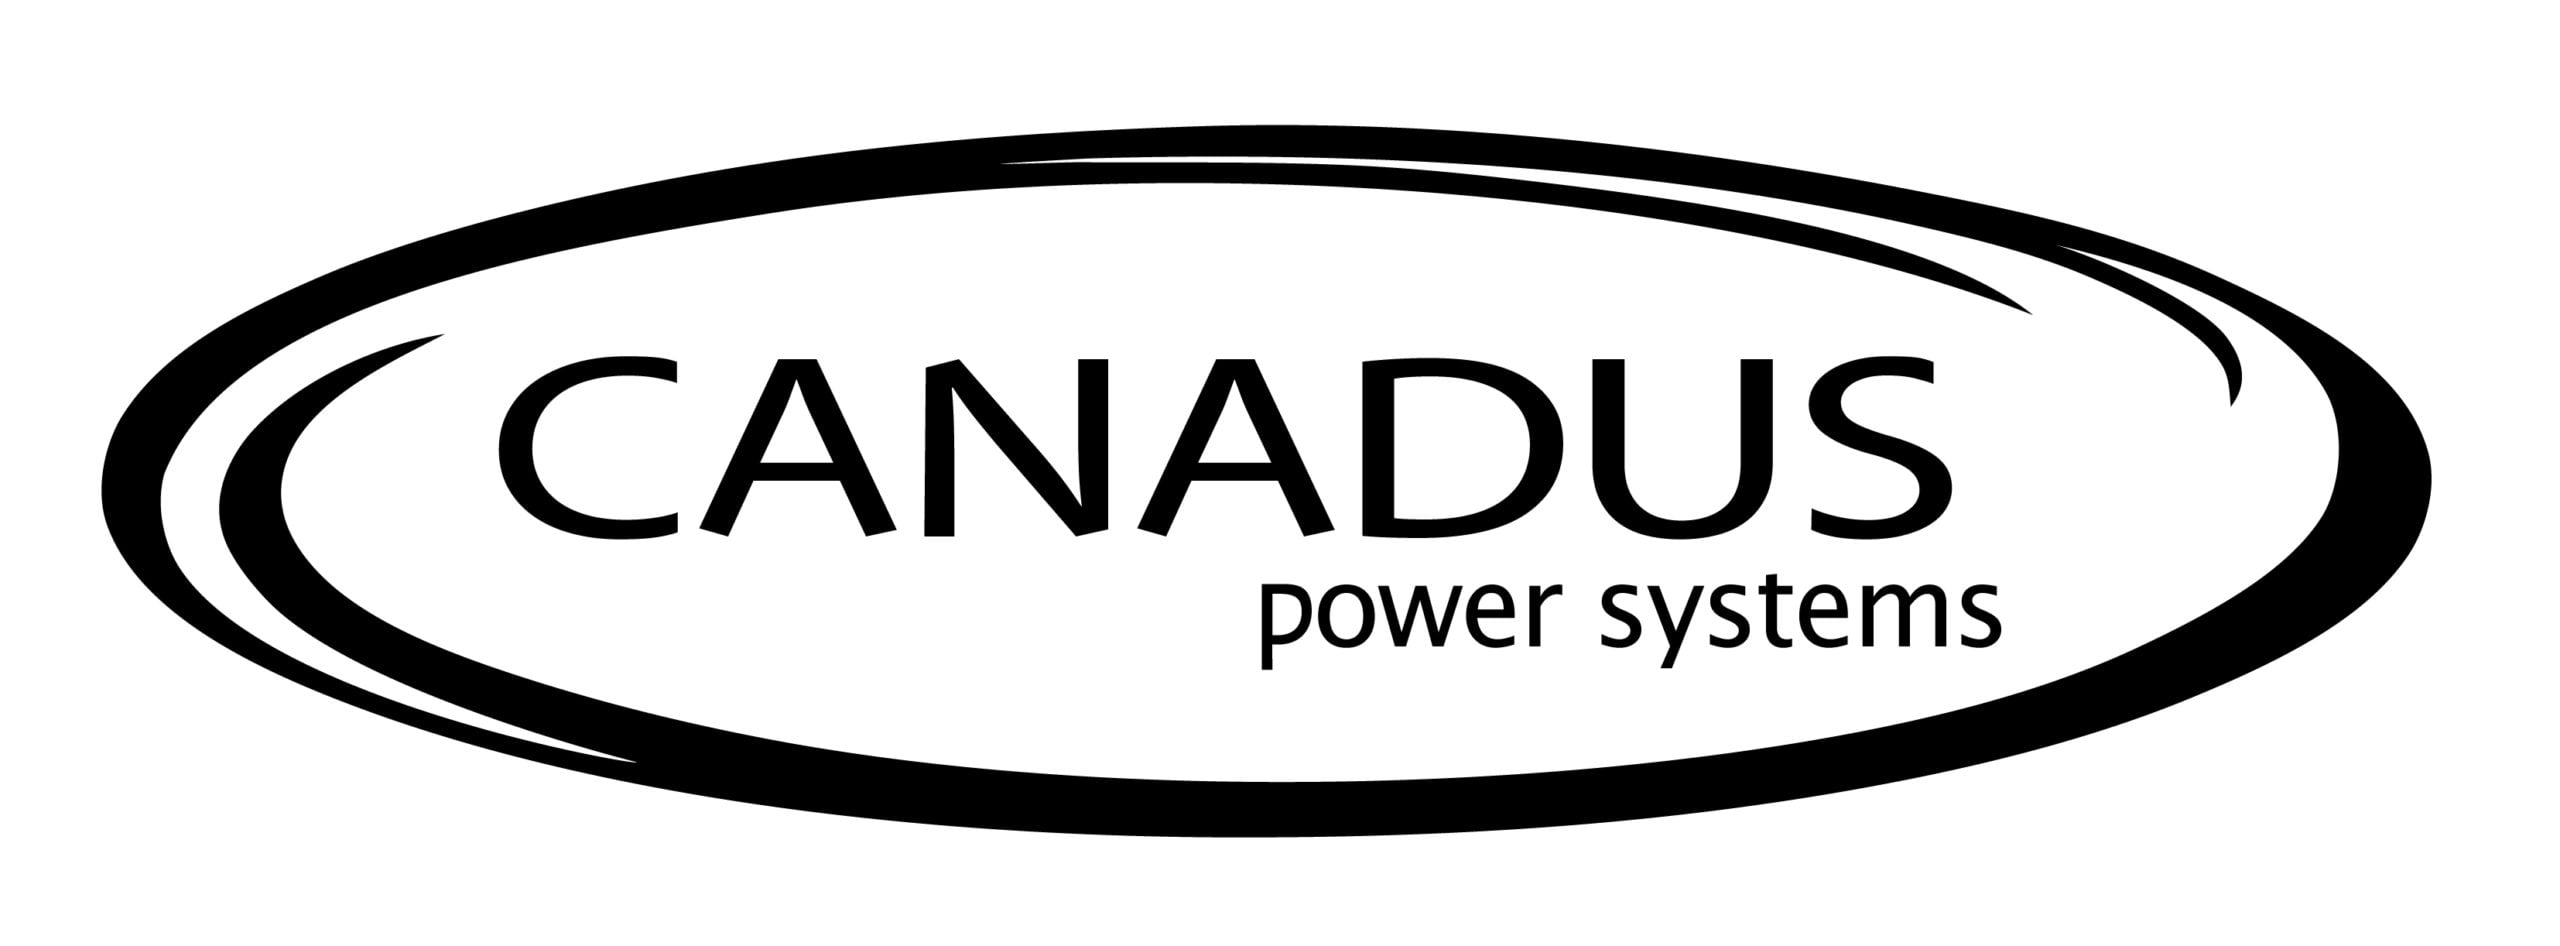 Canadus Power Systems, LLC